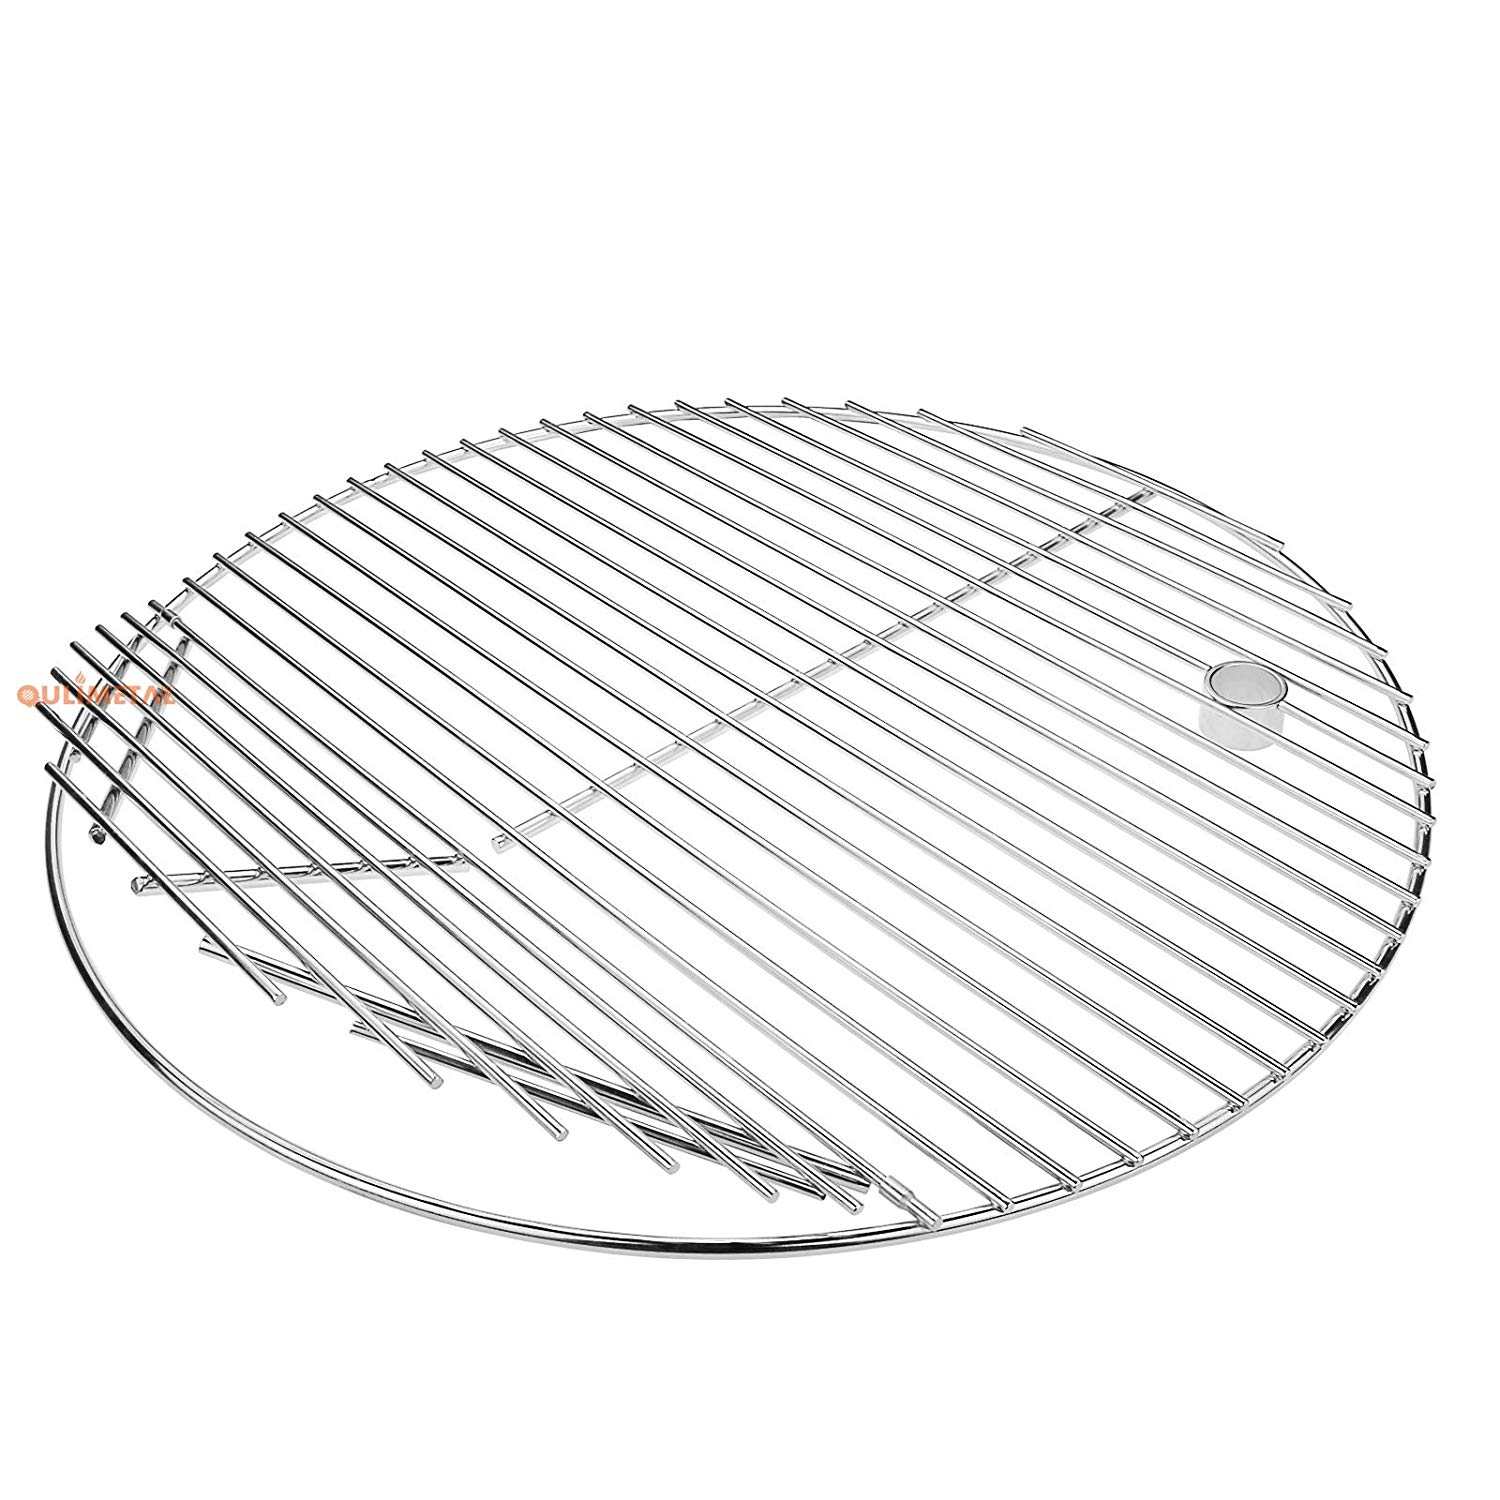 QuliMetal Round Cooking Grate